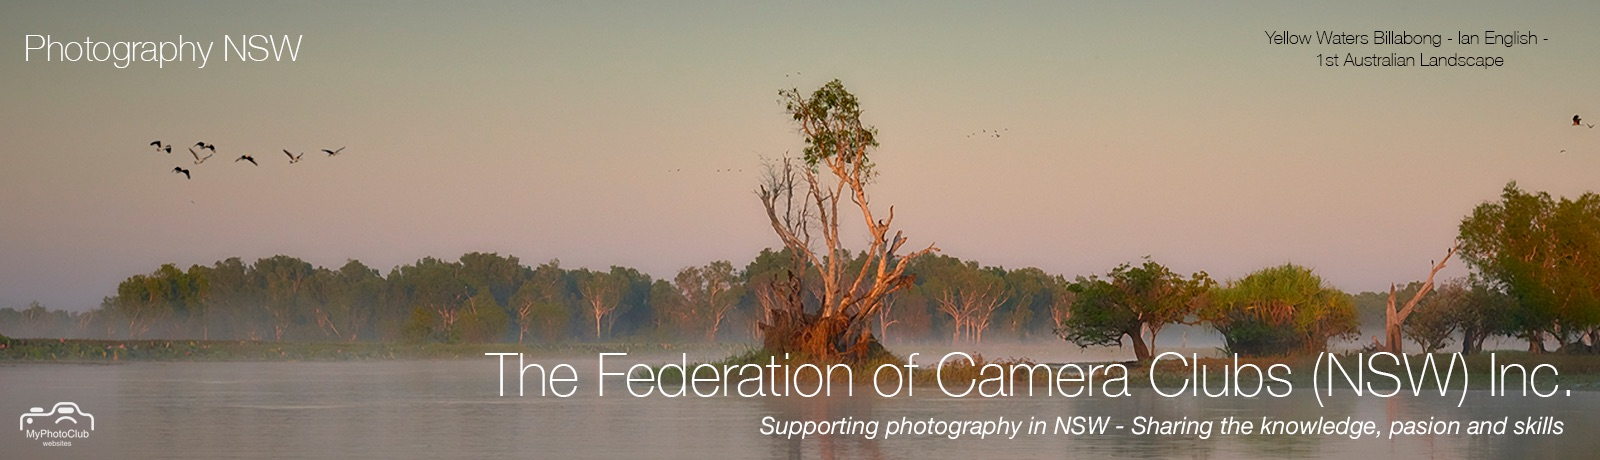 Federation of Camera Clubs (NSW )